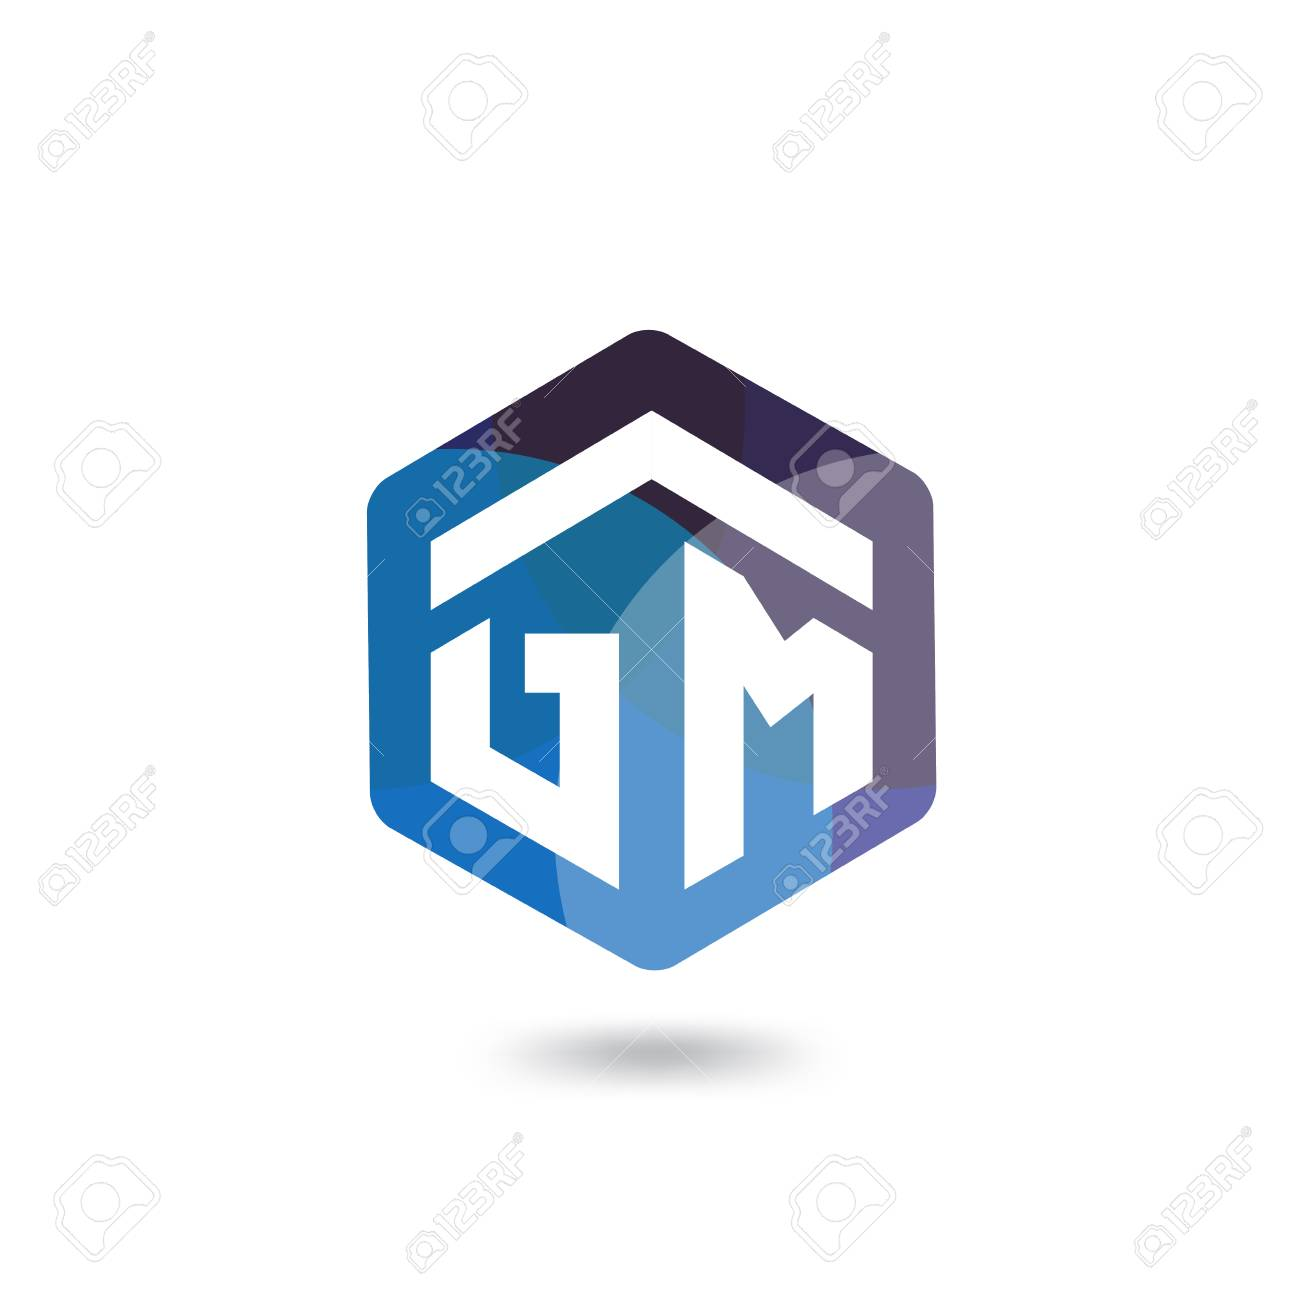 Gm Initial Letter Hexagonal Logo Vector Template Royalty Free